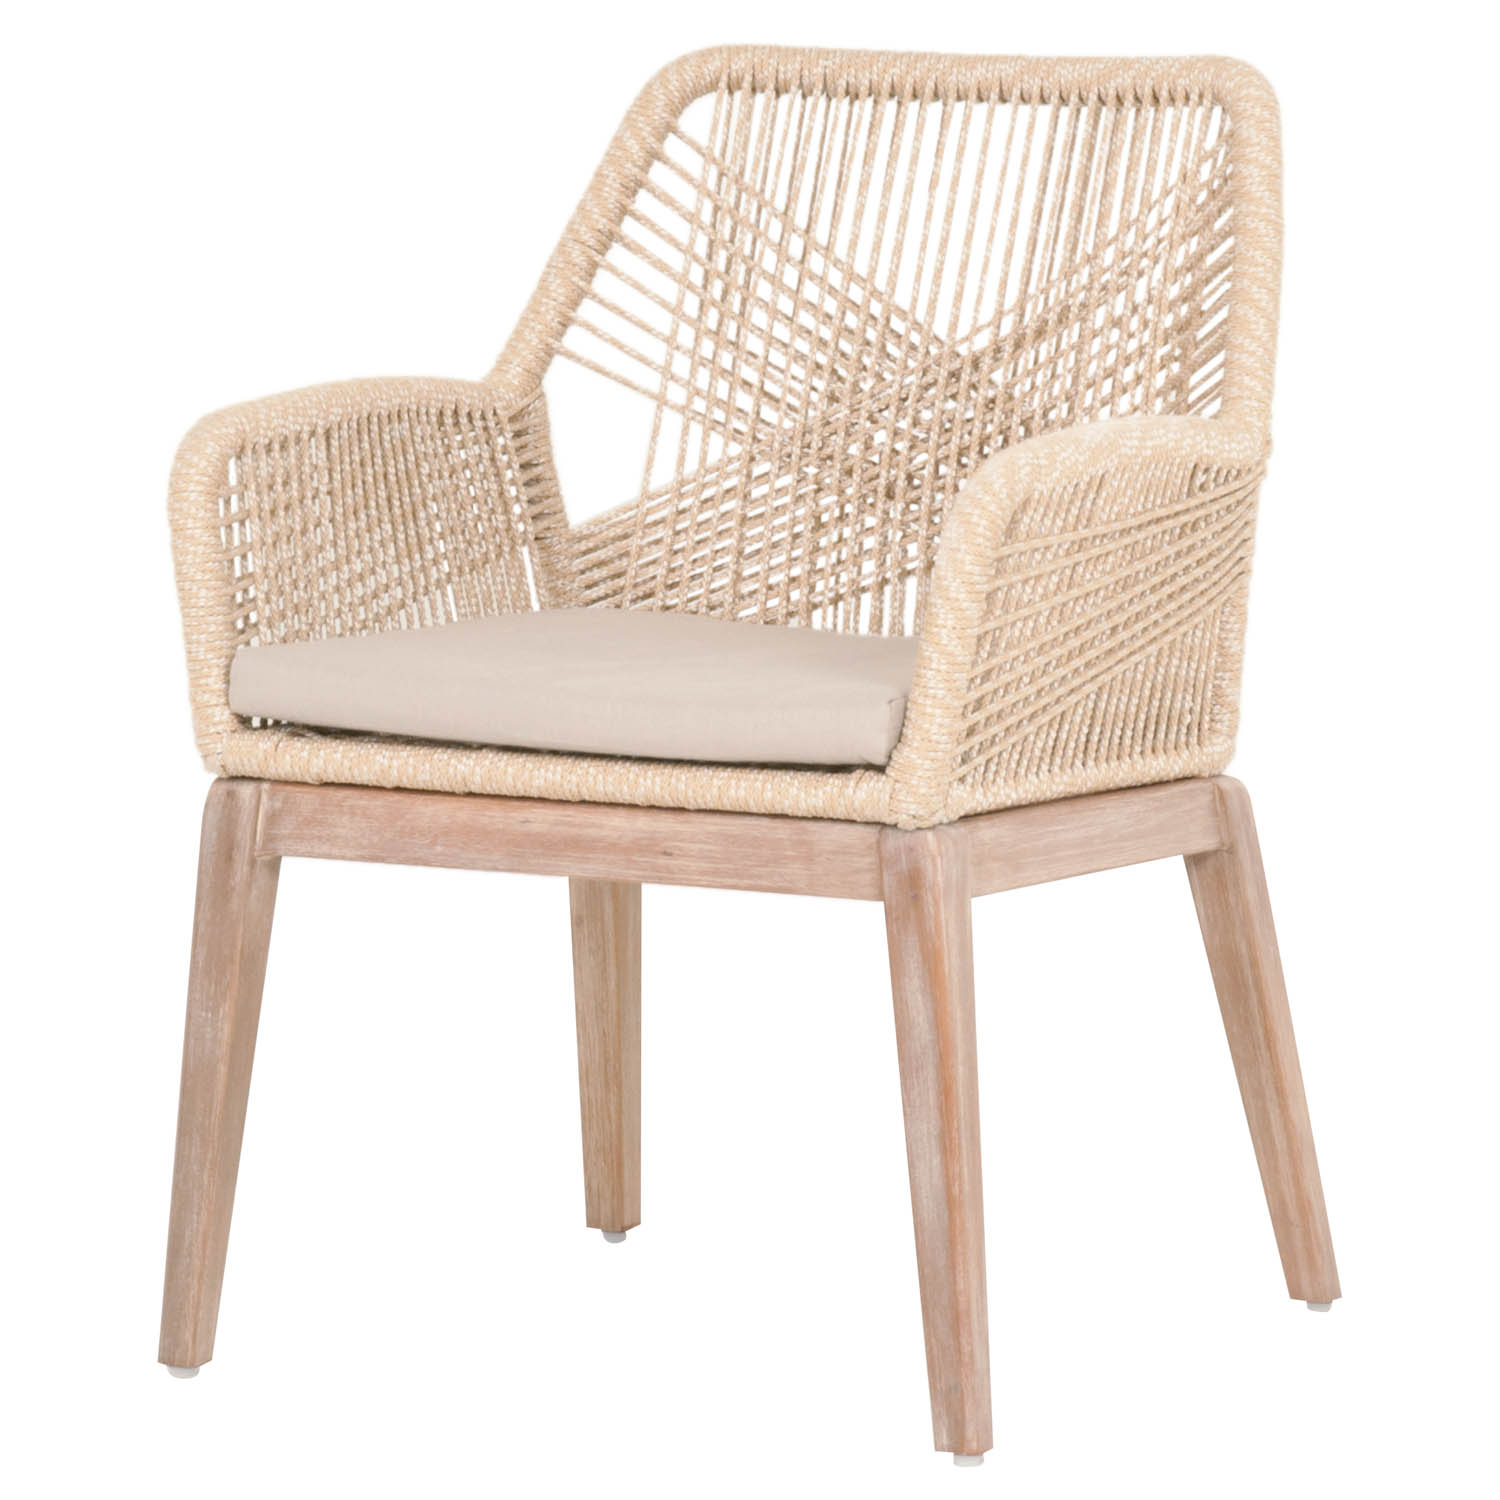 Rope Dining Chair Natural Eclectic Goods Eclectic Goods